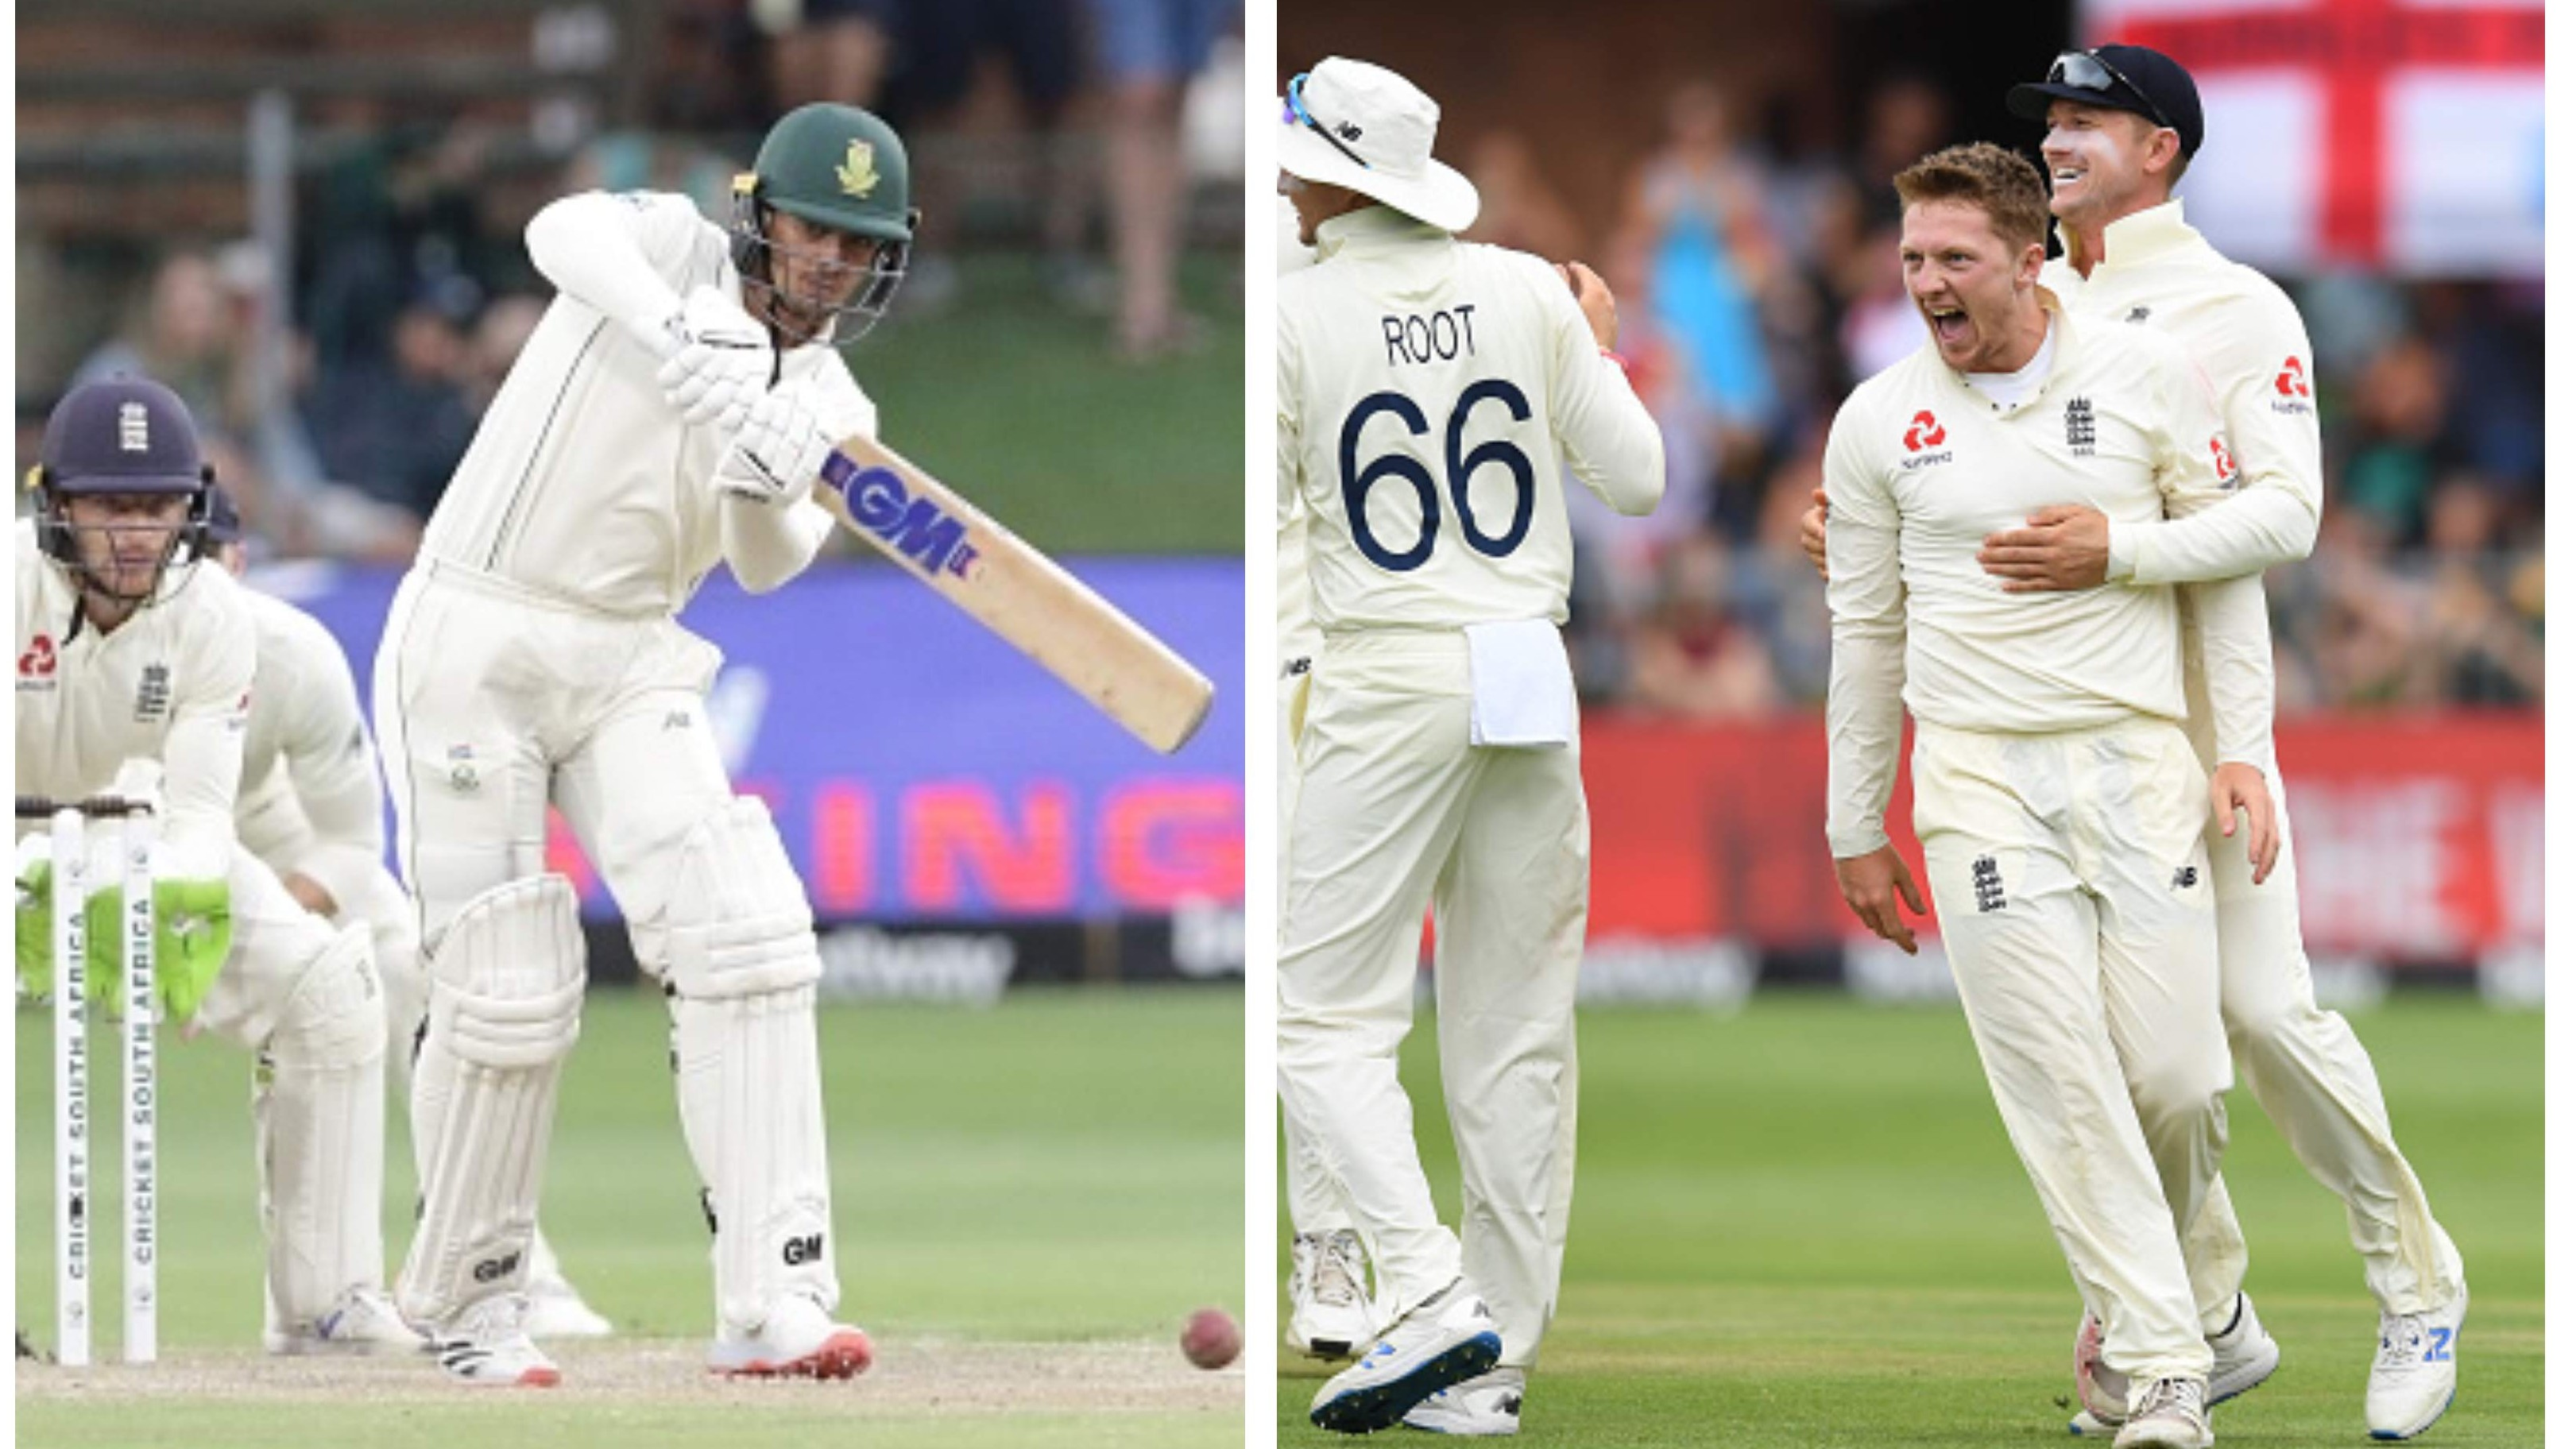 SA v ENG 2020: De Kock's fighting fifty revives South Africa after Dom Bess claims 5-fer for England